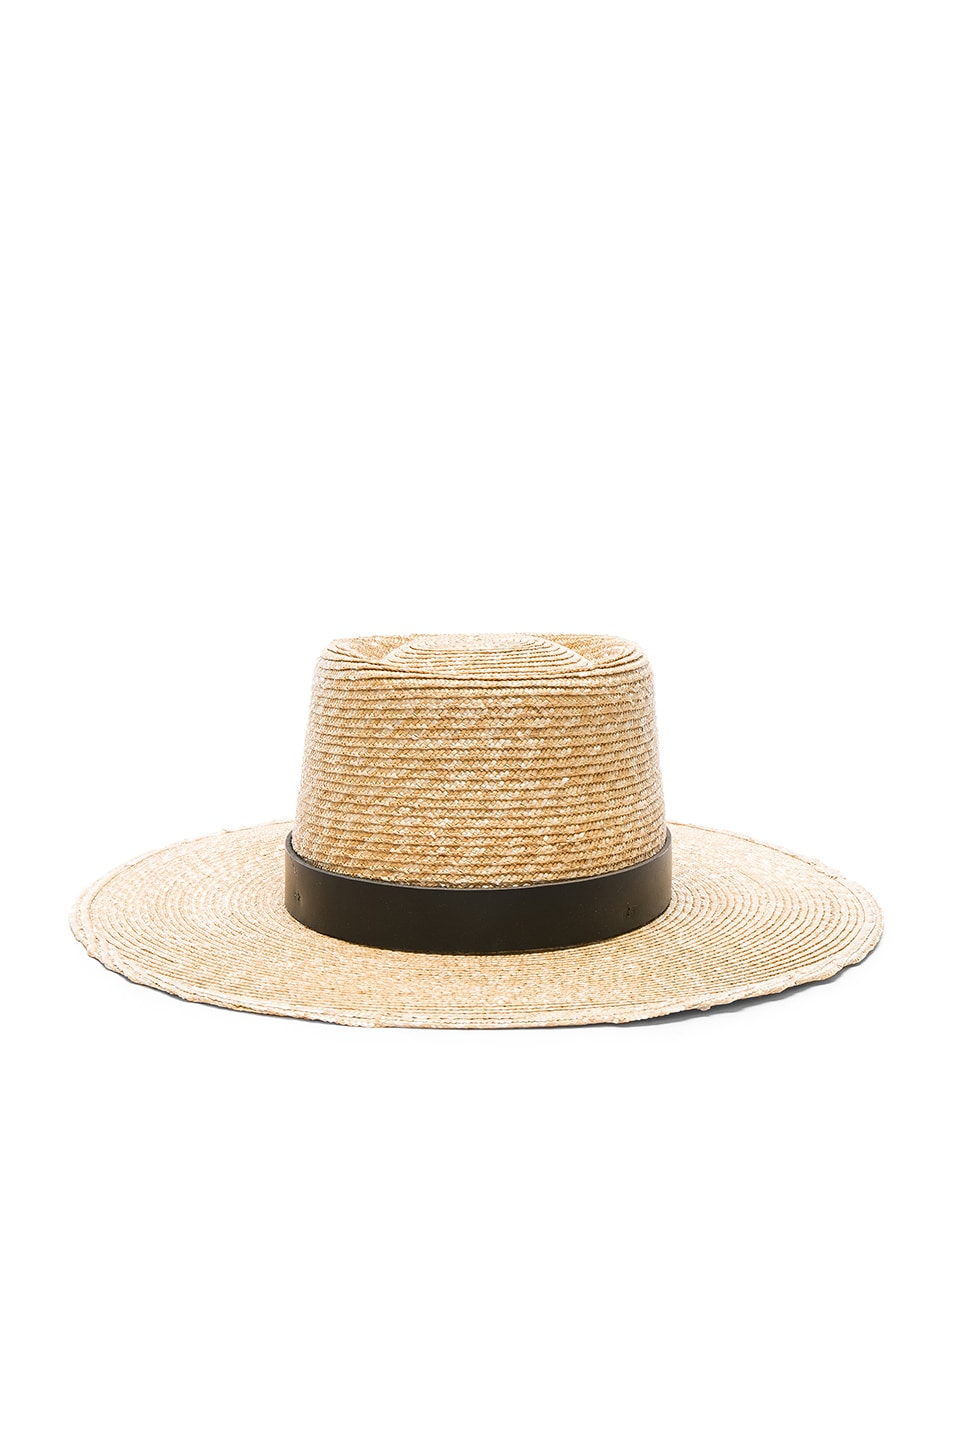 JANESSA LEONE Ruth Boater Hat in Brown